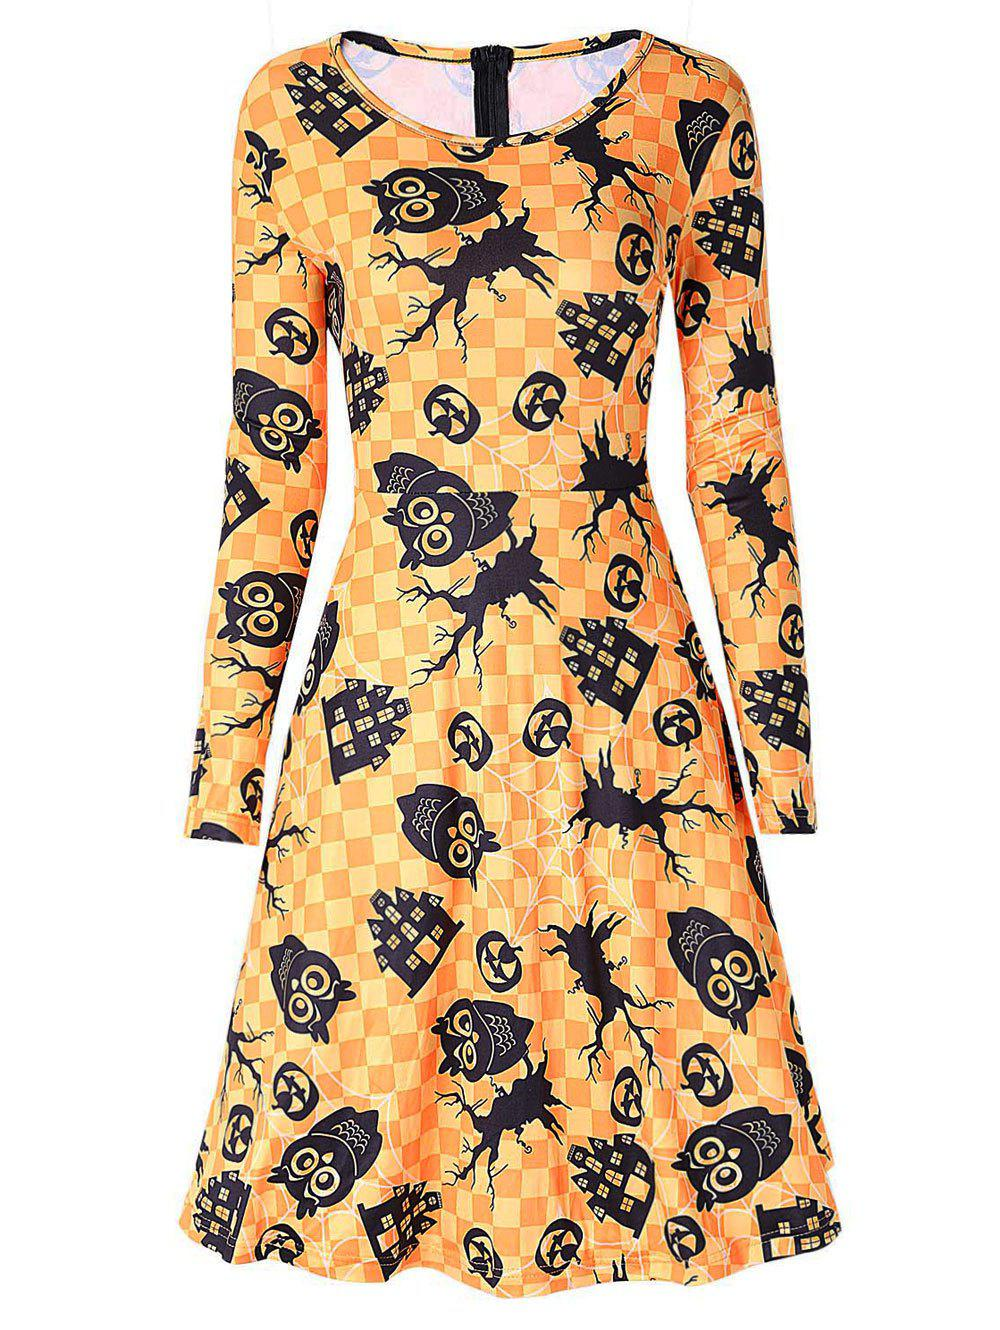 Owl and Pumpkin Print Halloween Swing Dress - YELLOW XL